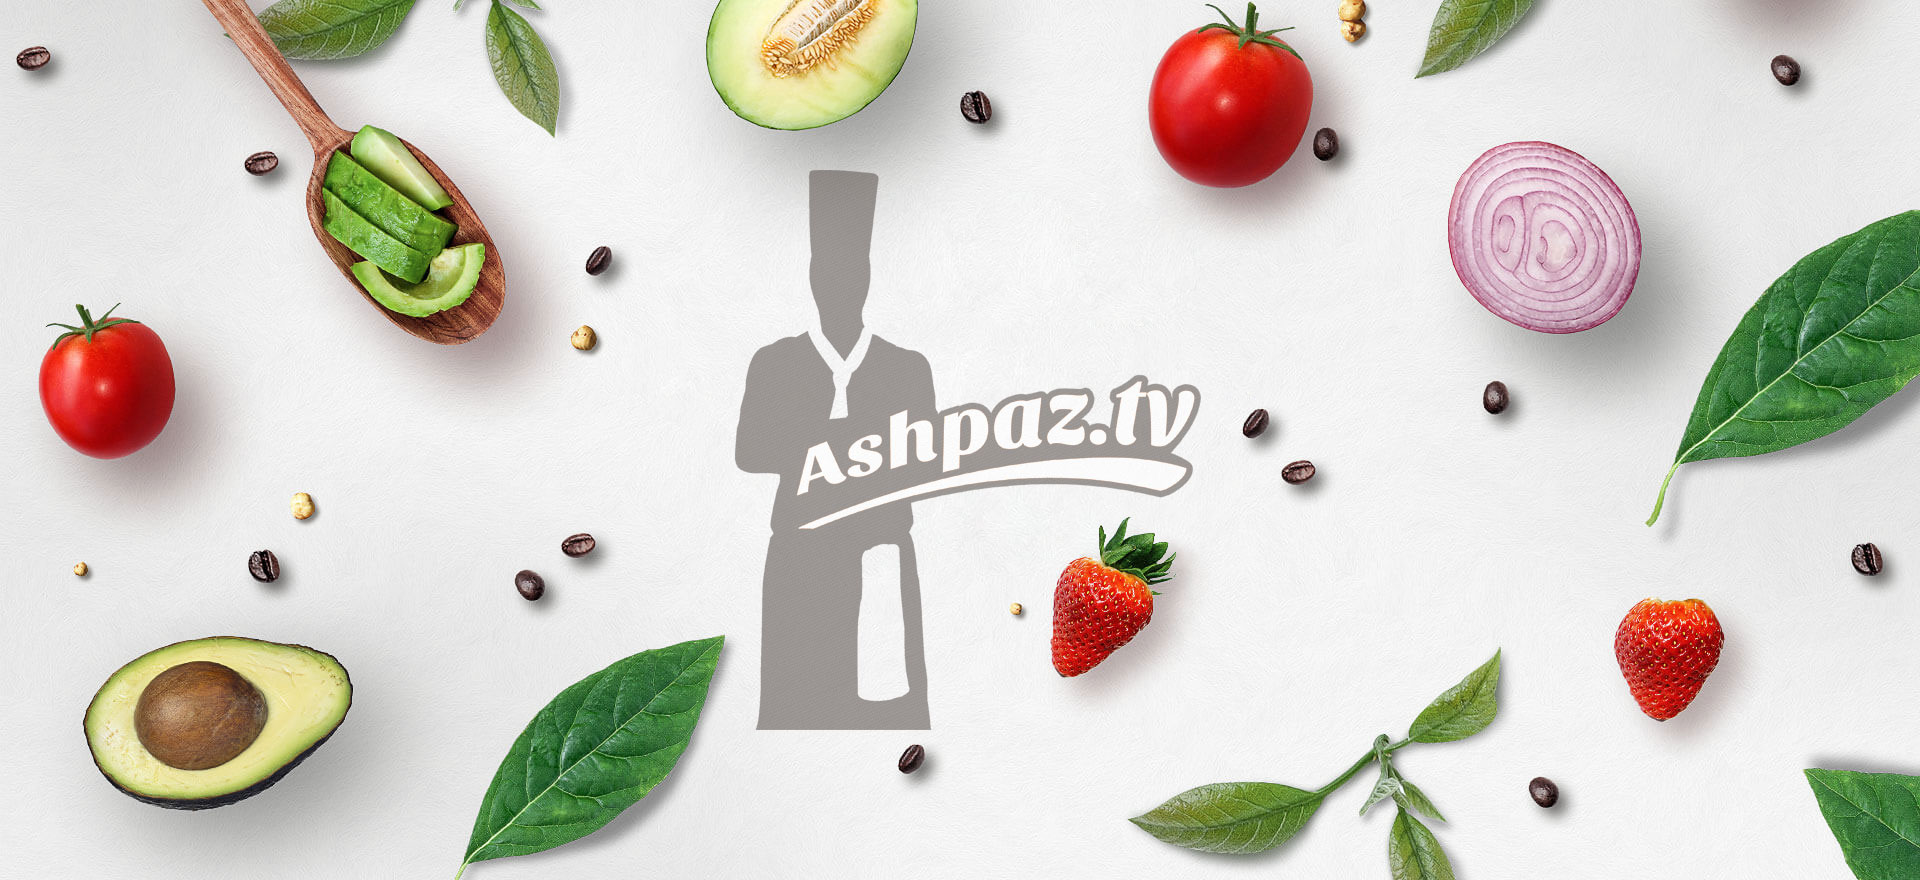 home_ashpaztv_header01